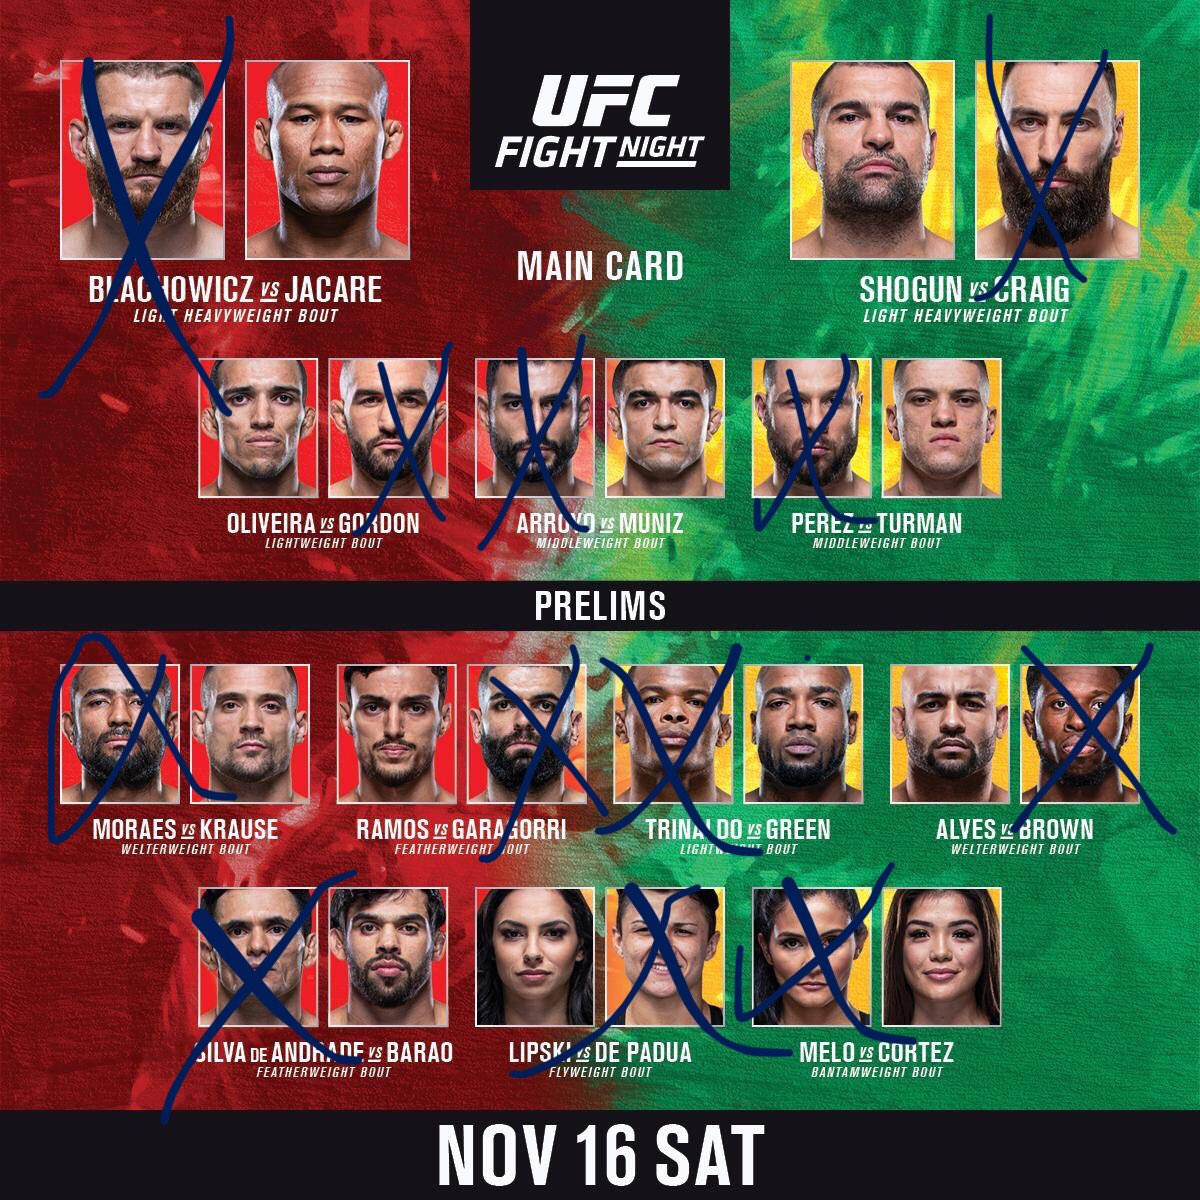 My picks for tonight! #UFCSaoPaulo #UFC #JACARE